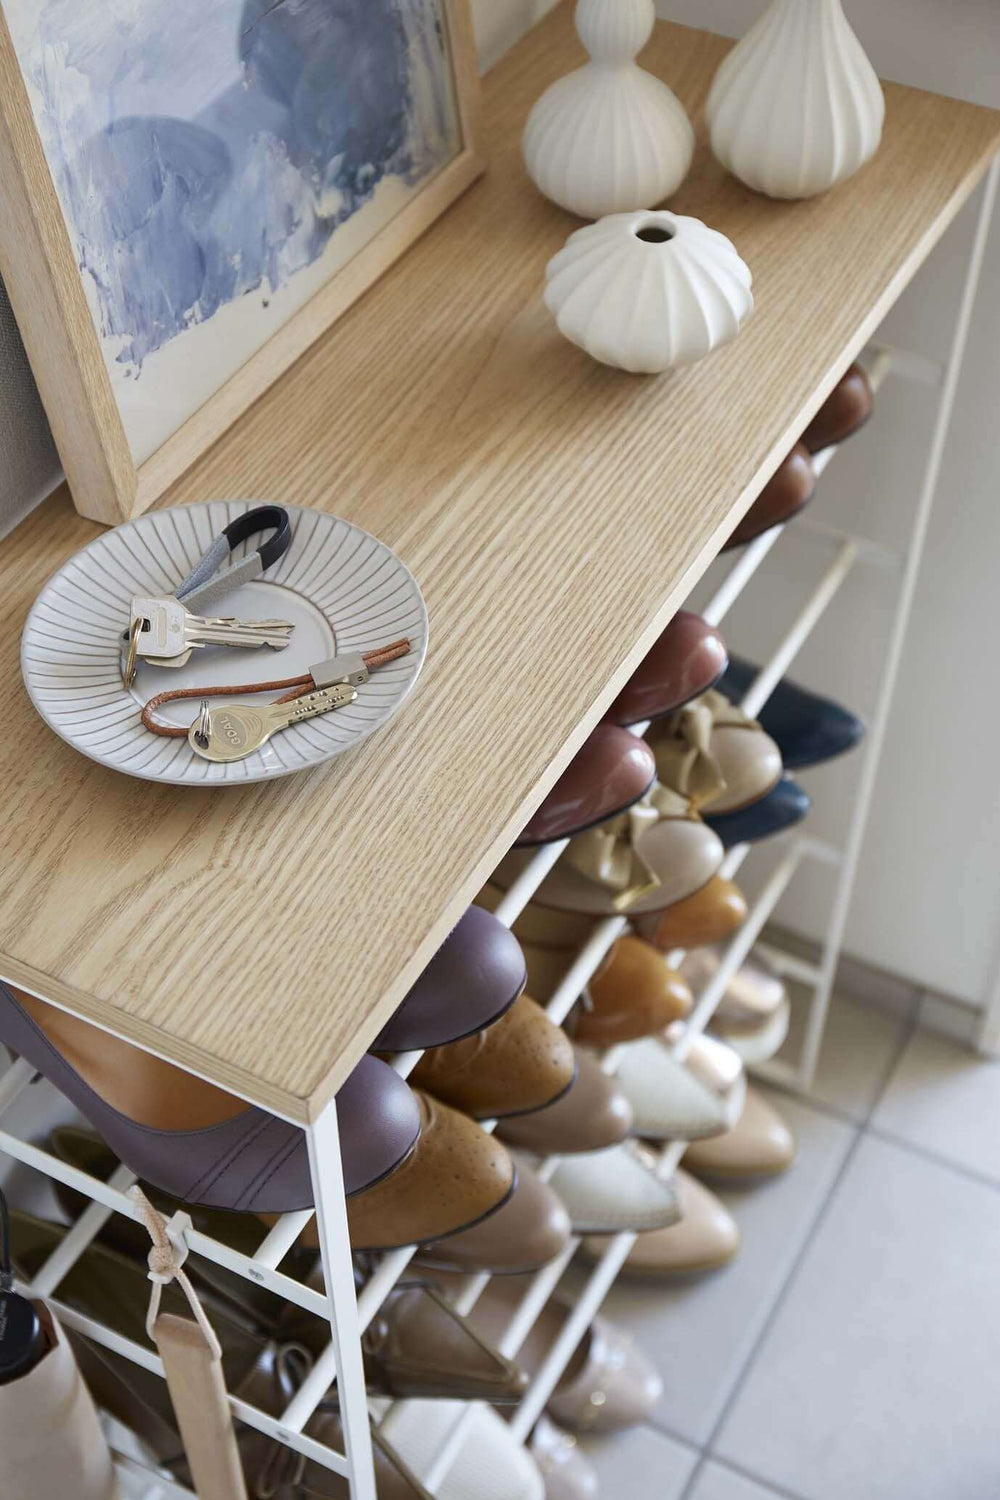 Aerial view of Yamazaki's white 6 Tier Wood Top Shoe Rack with keys, vases and artwork on the top wooden shelf